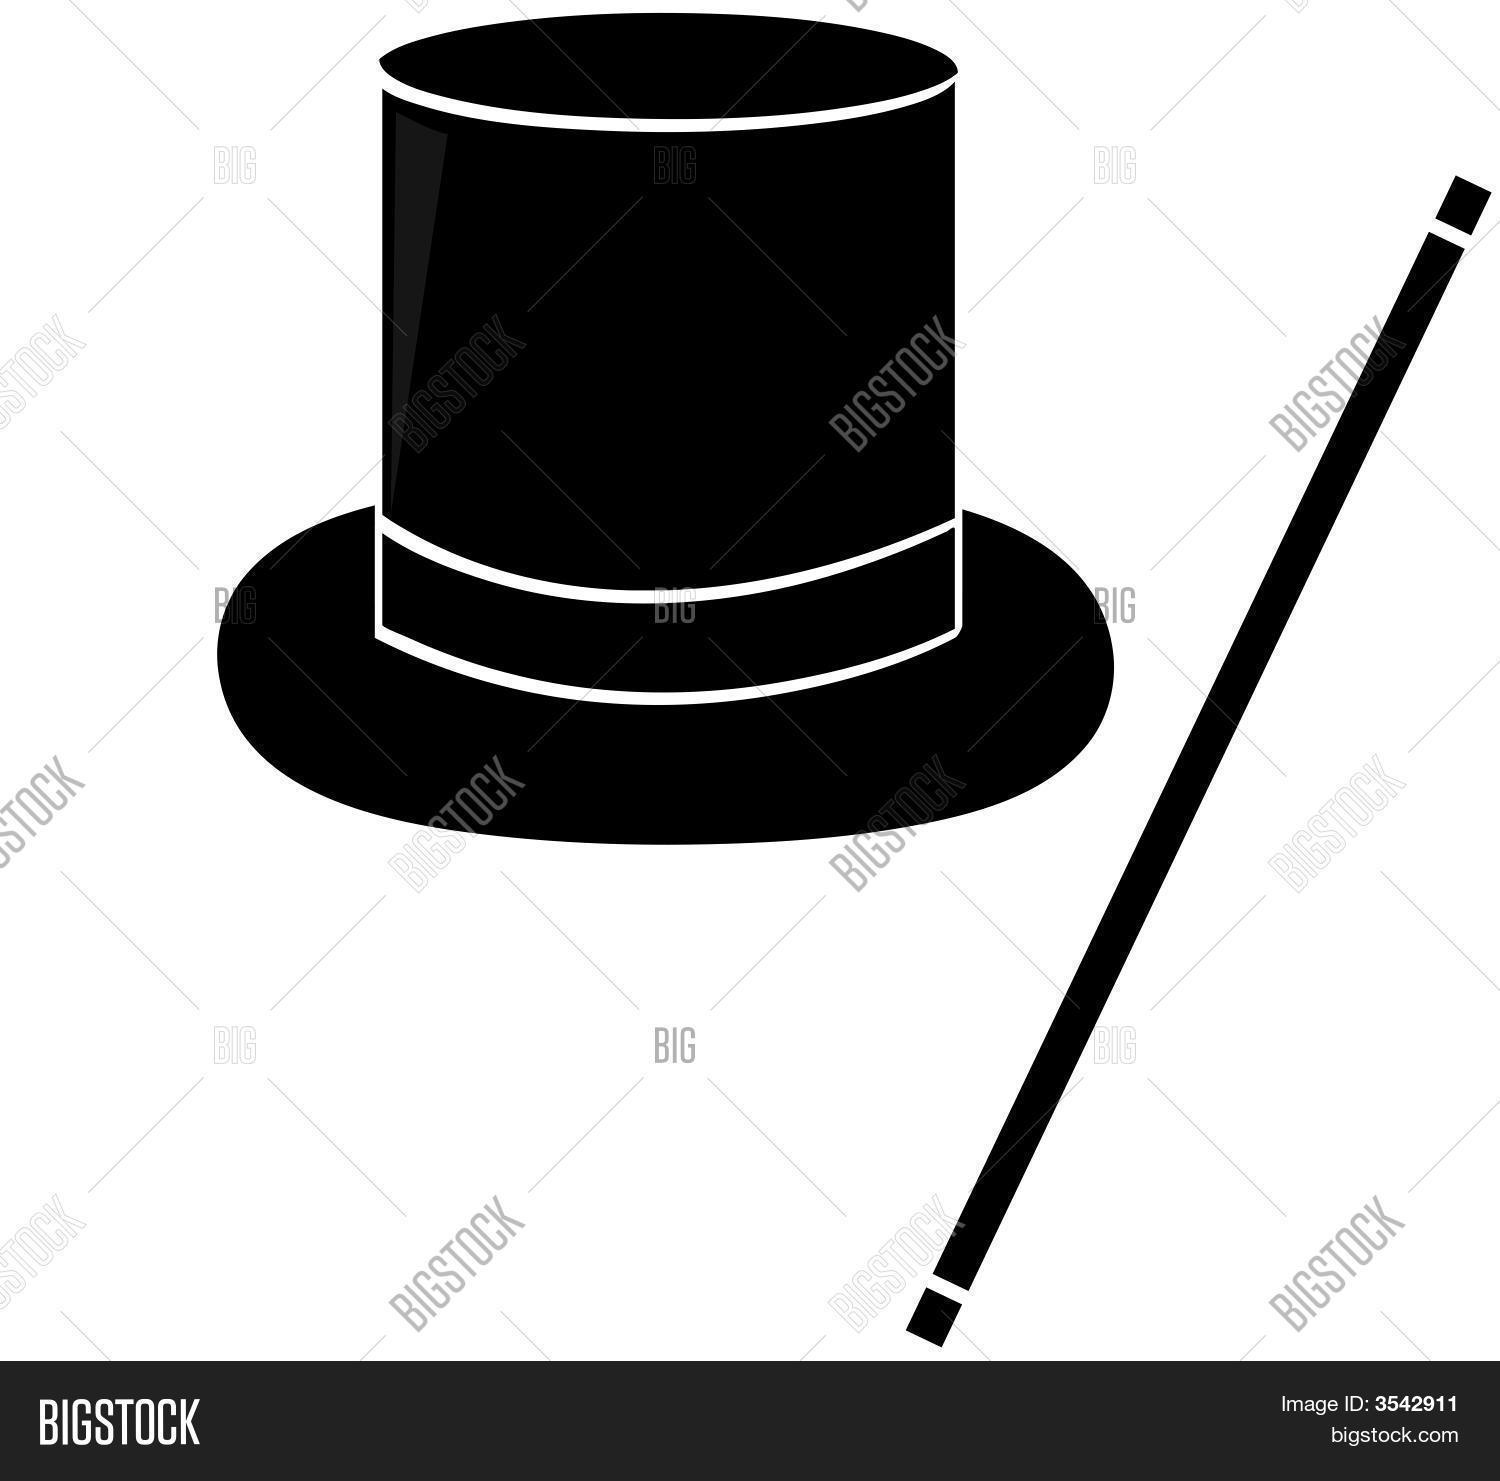 Magic Hat And Wand Silhouette. Stock Vector & Stock Photos ...